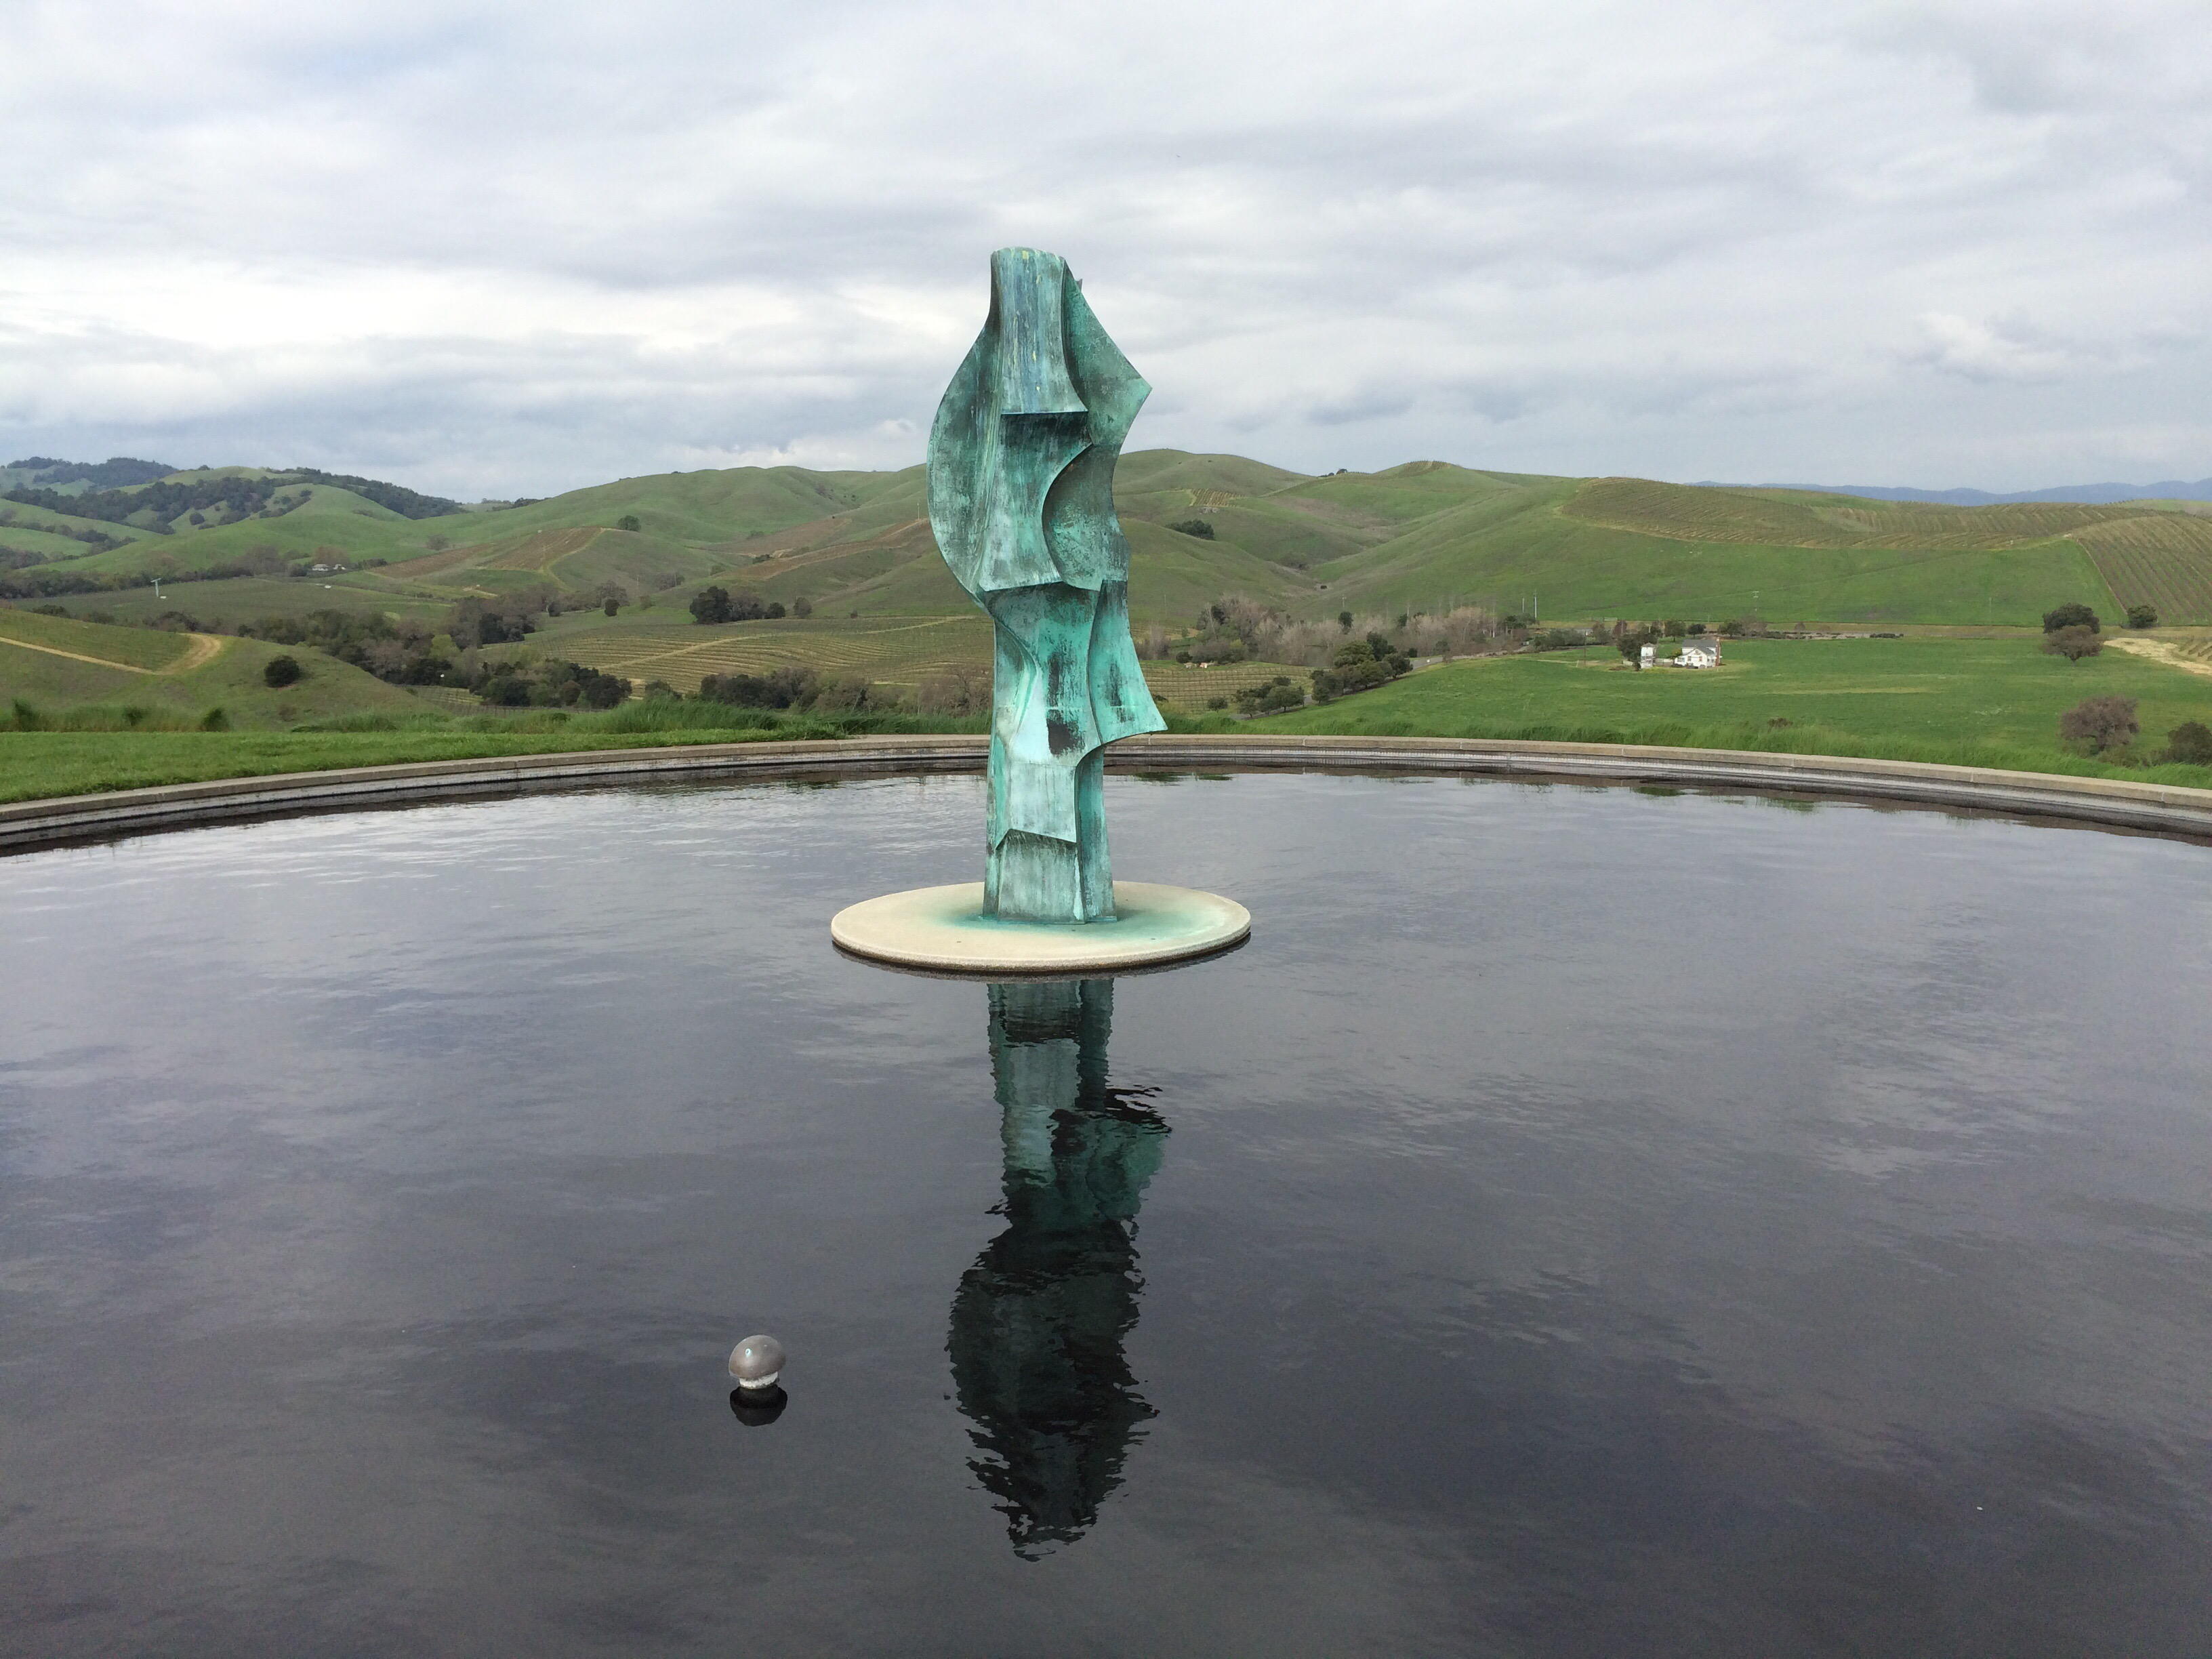 Fountain in the Artesa Winery, Napa Valley